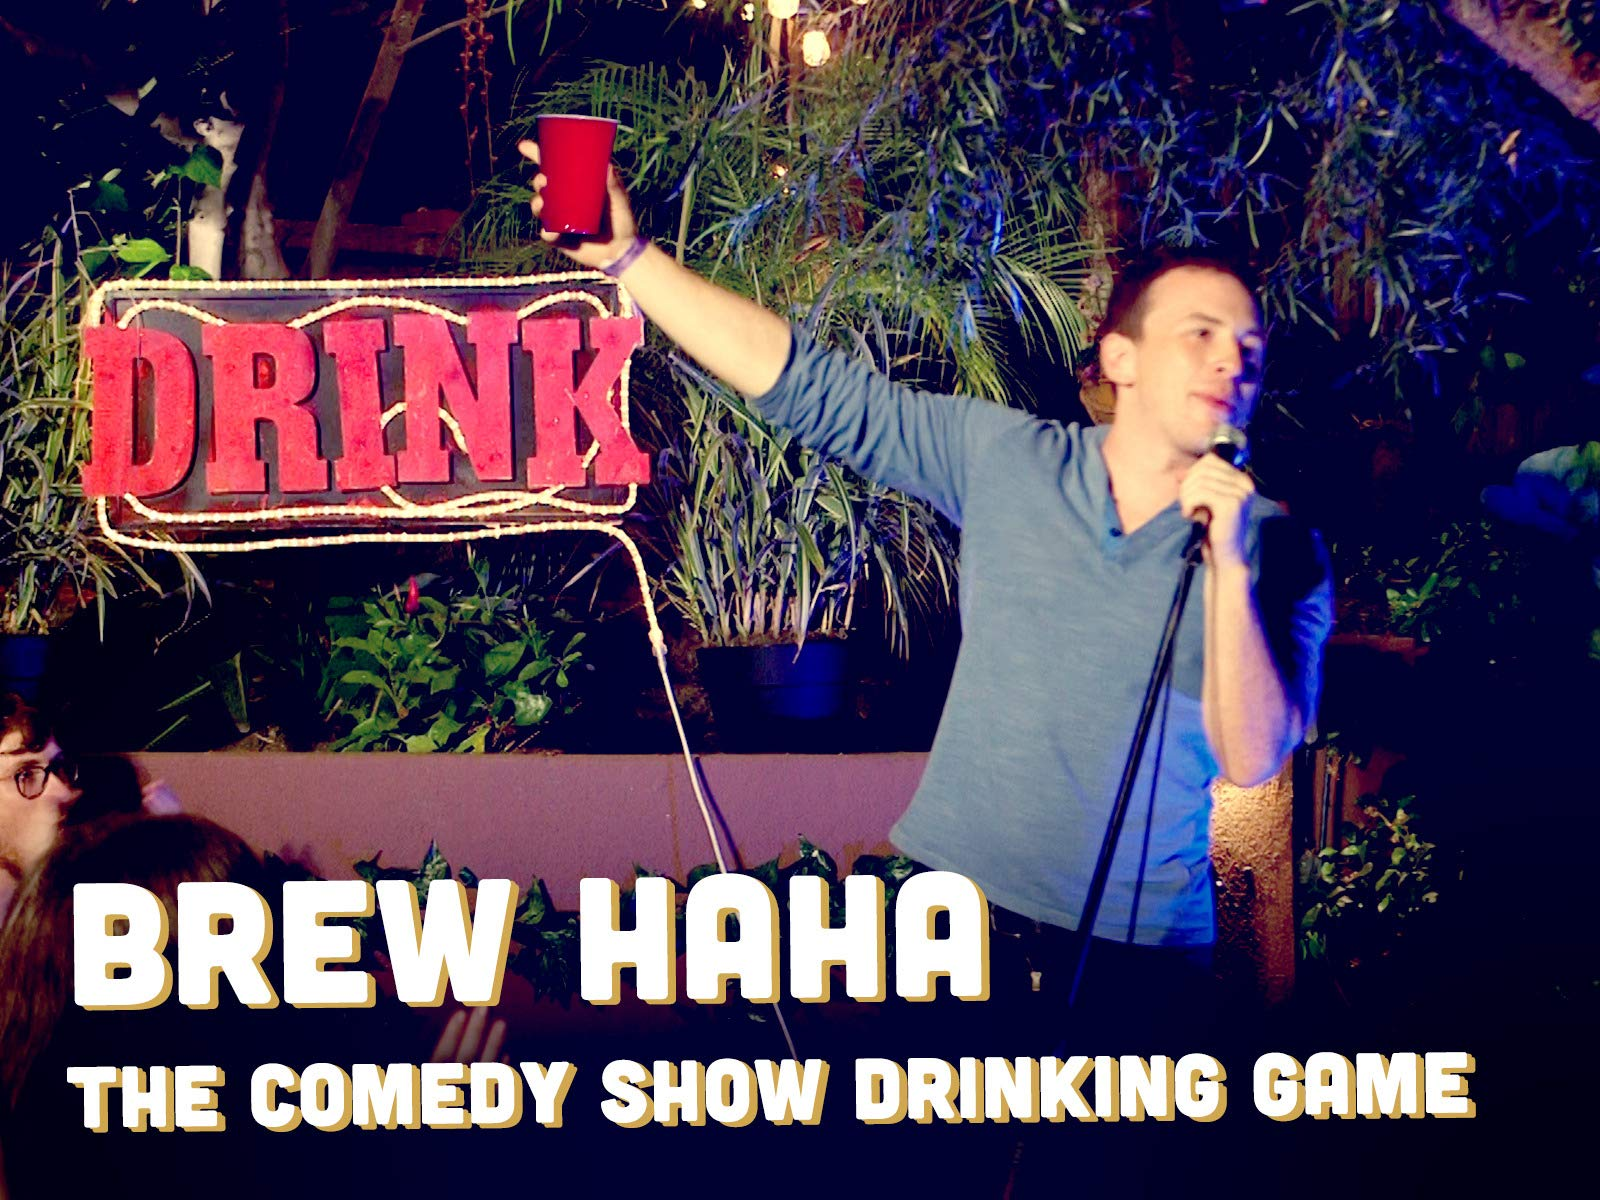 Brew HaHa The Comedy Show Drinking Game - Season 1